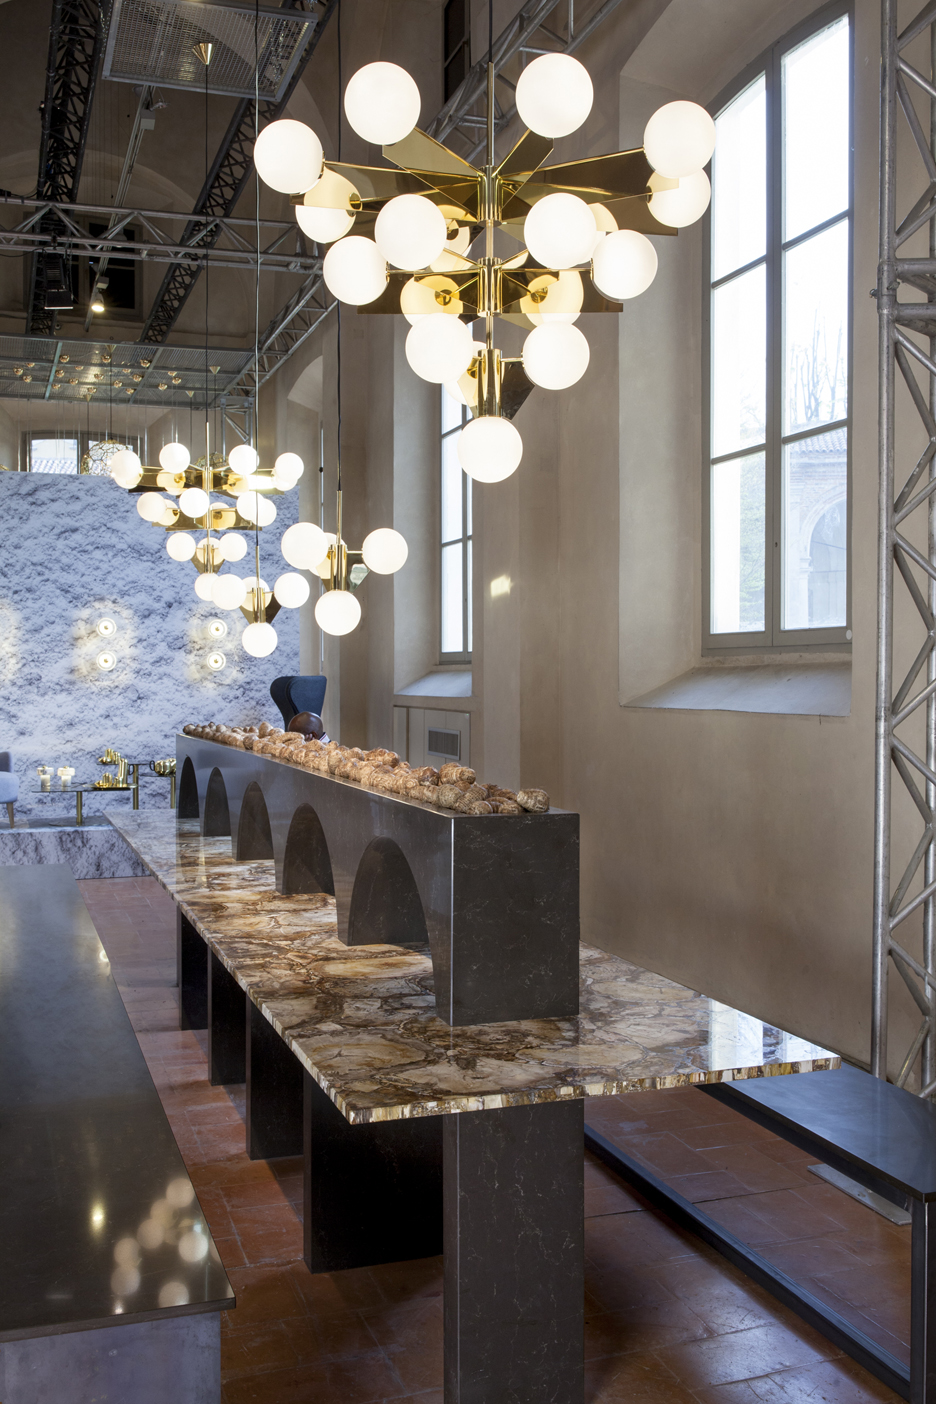 The Restaurant by Tom Dixon for Caesarstone in Milan 2016